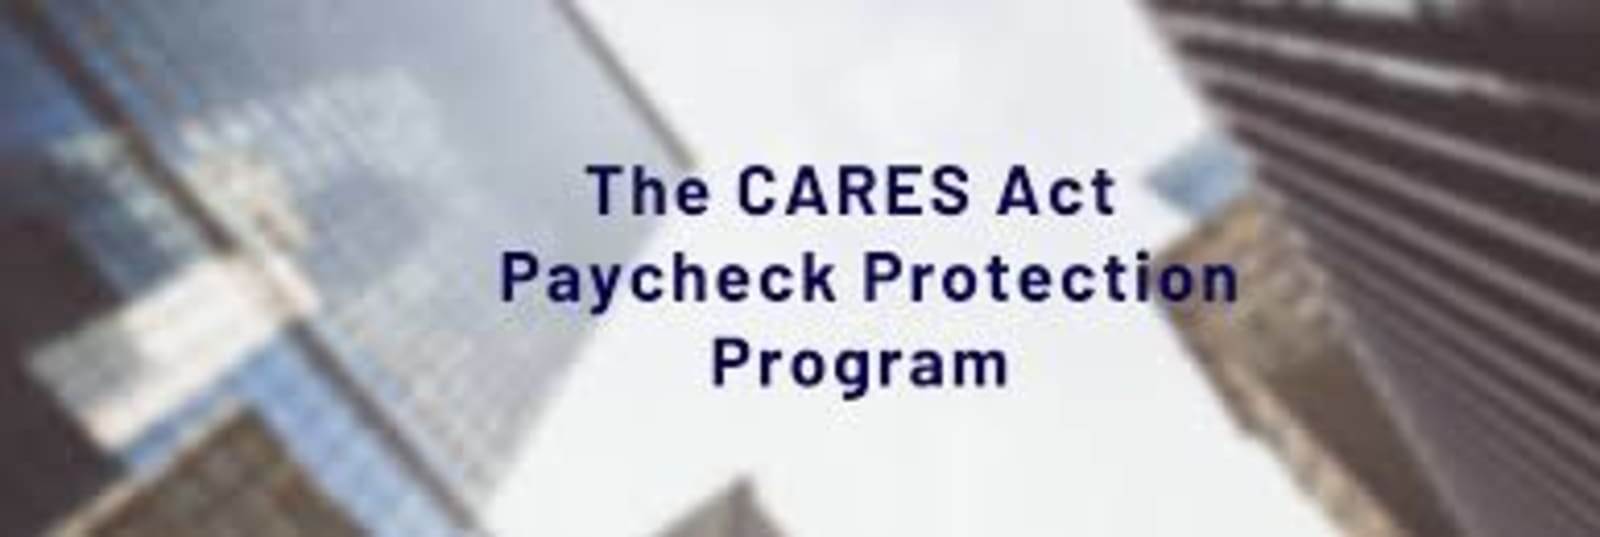 cares-act-ppp-2-w1600.jpg